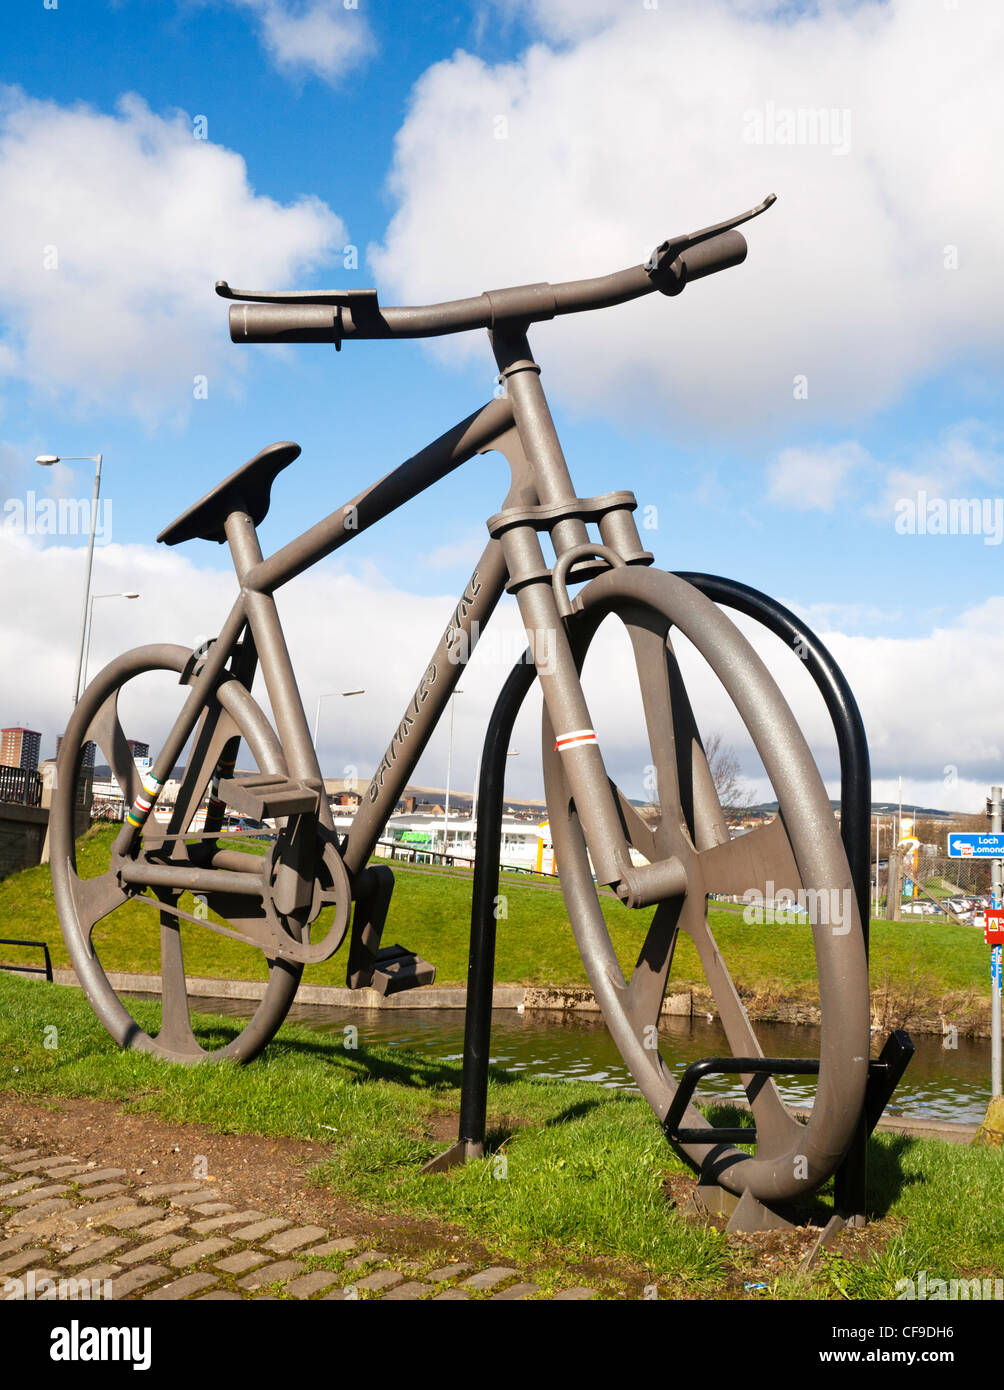 Giant statue named the Bankies Bike designed by artist John Crosby, Clydebank, Scotland. - Stock Image